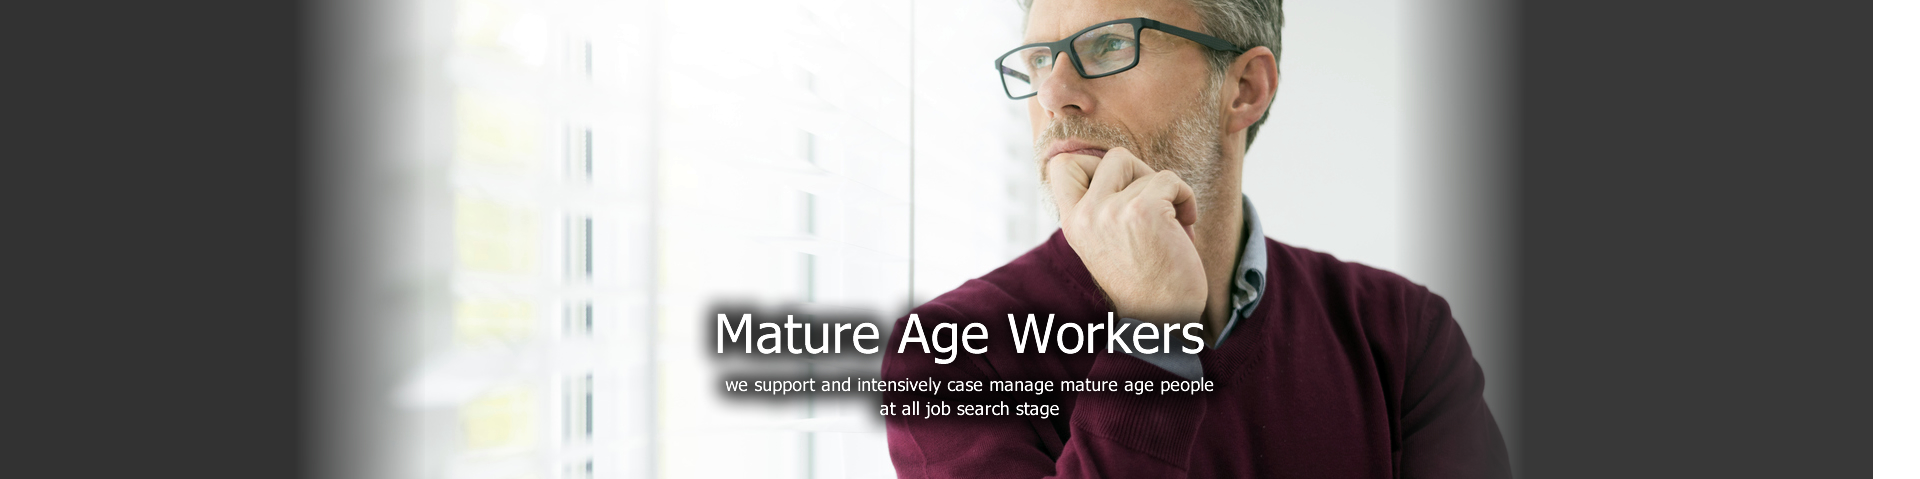 mature age workers